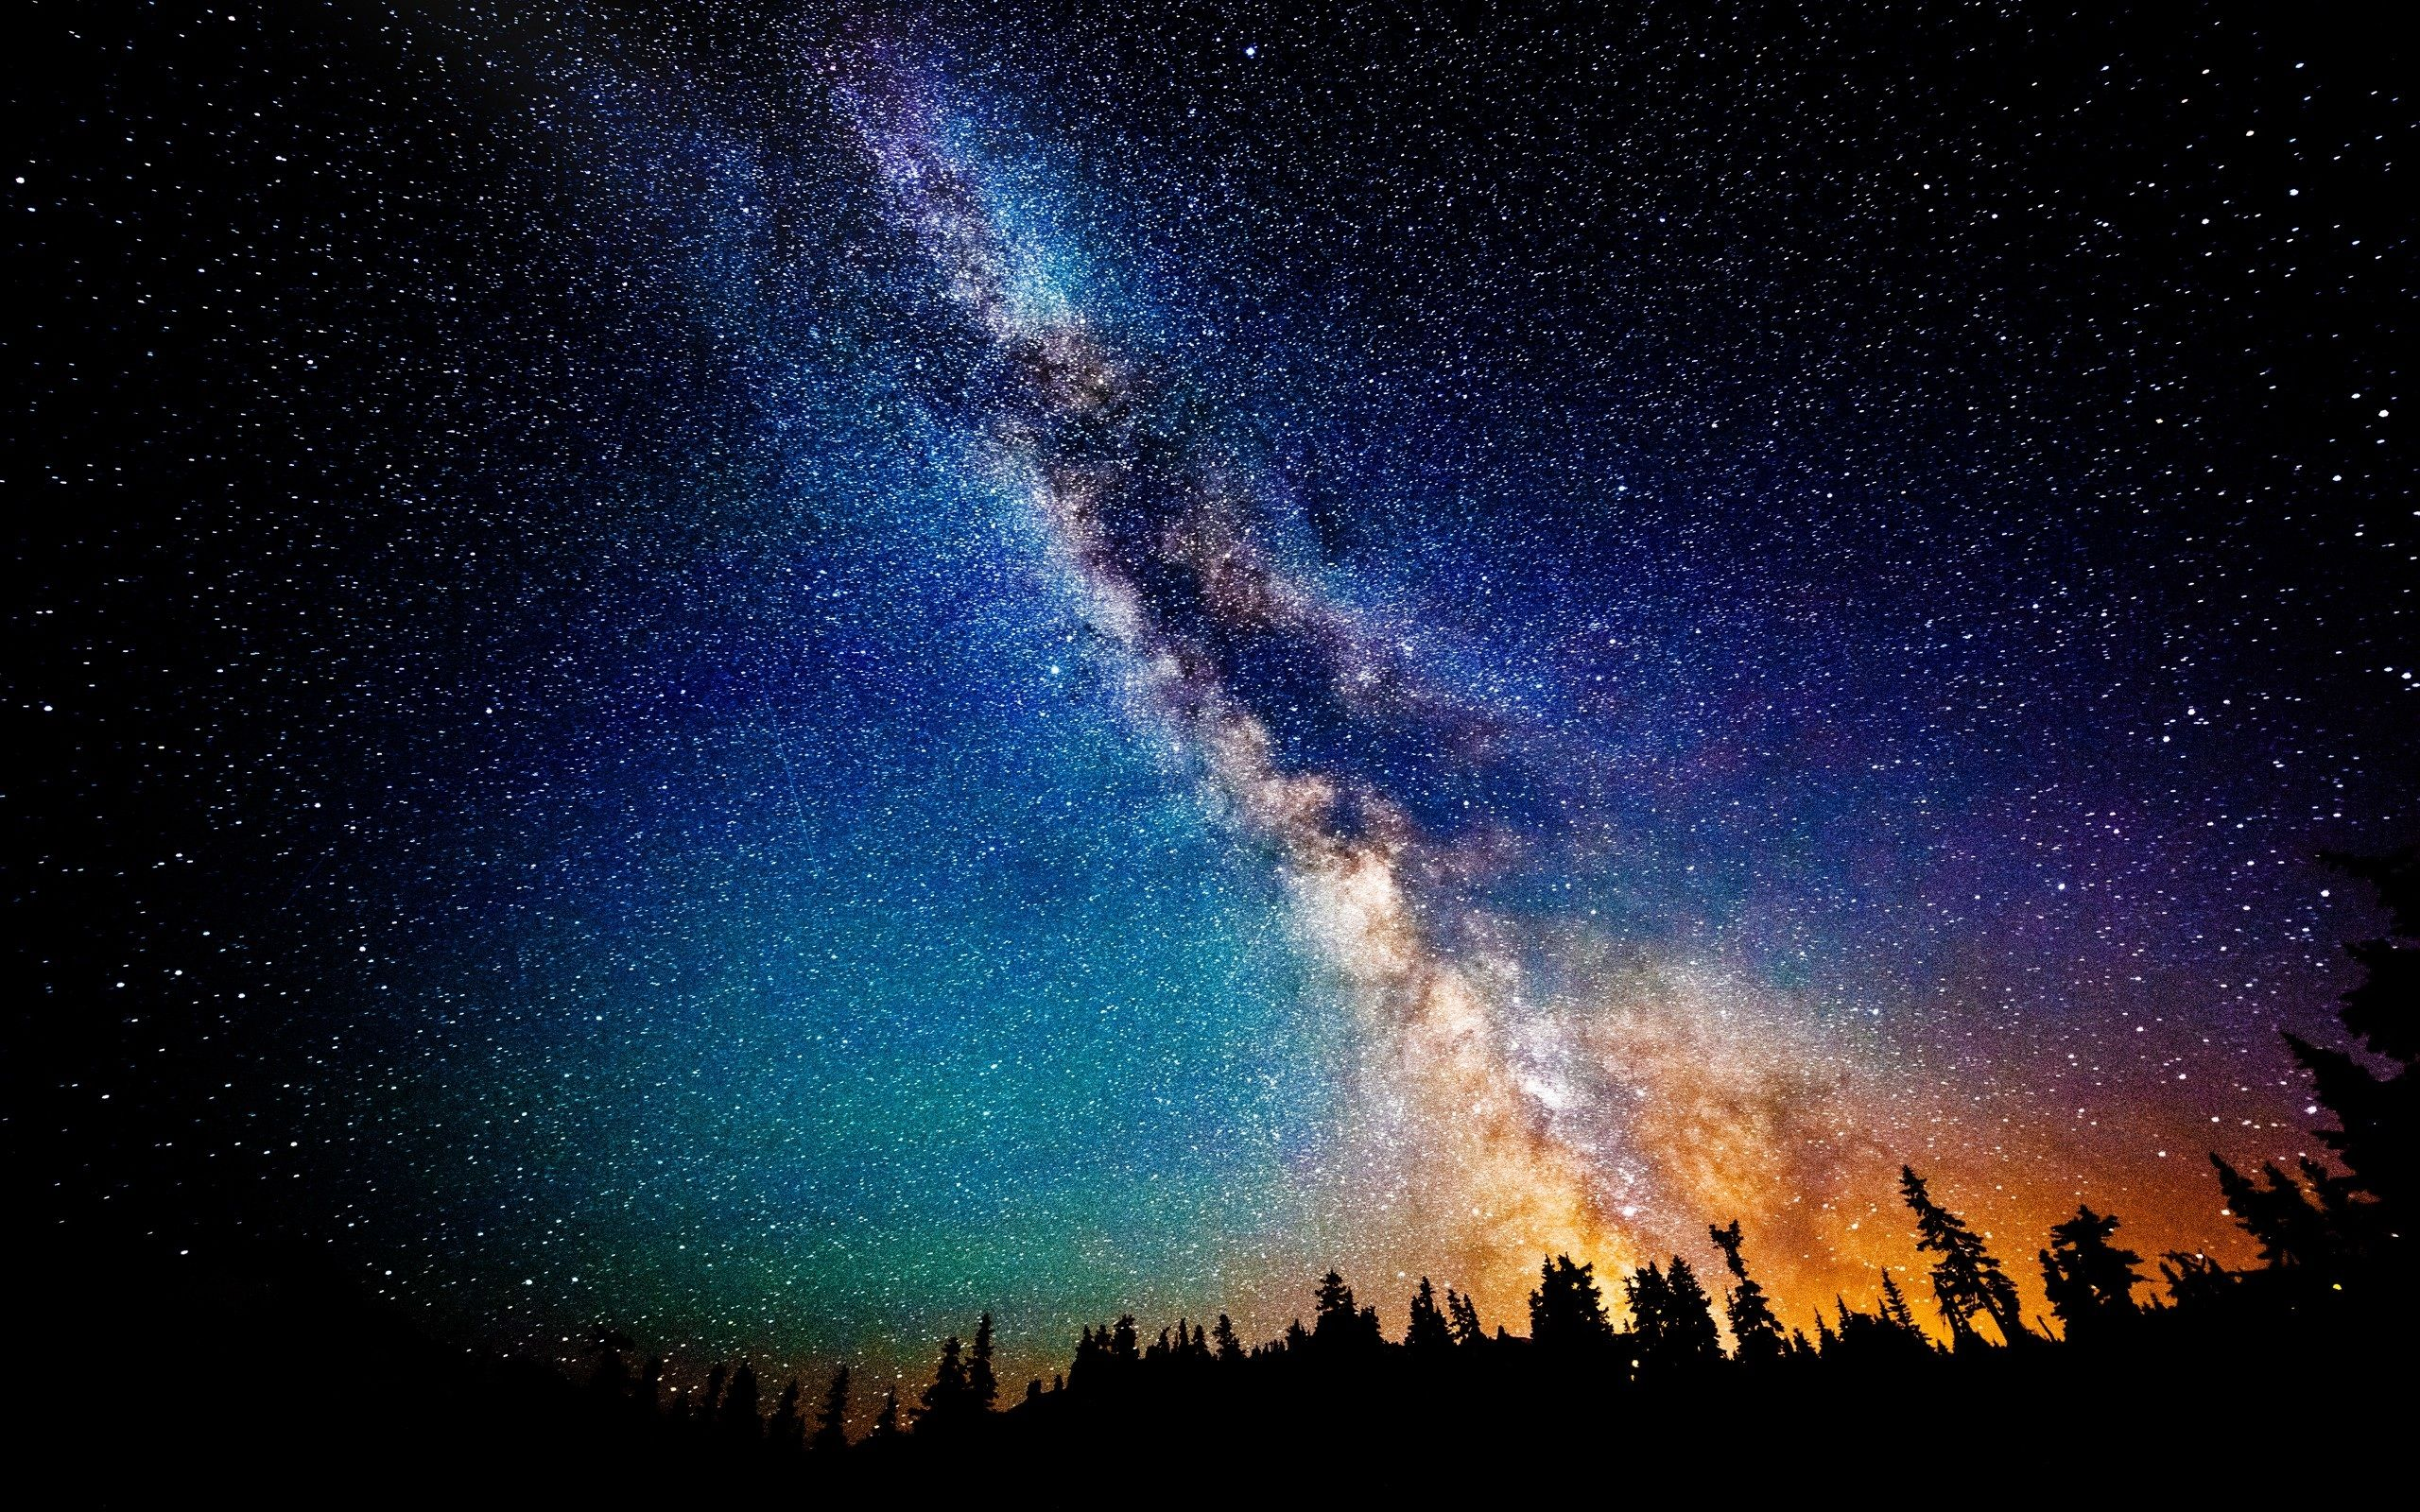 Galaxy Wallpaper Full HD hd Wallpaper 2560x1600 px 2.73 MB